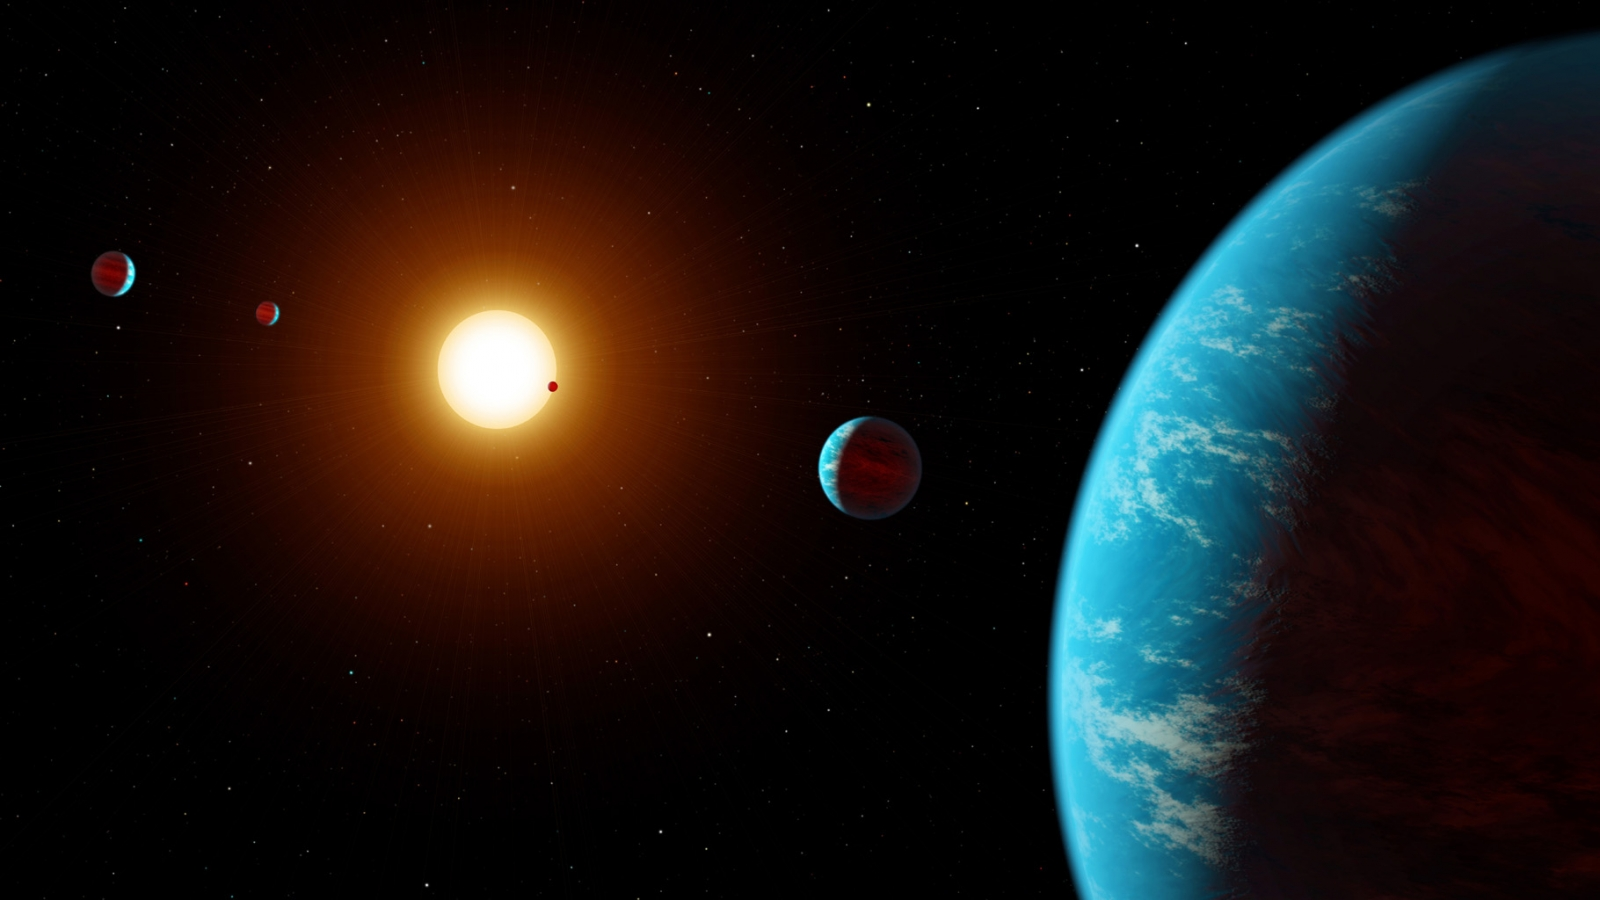 Five New Alien Super Earth Exoplanets Found 620 Light